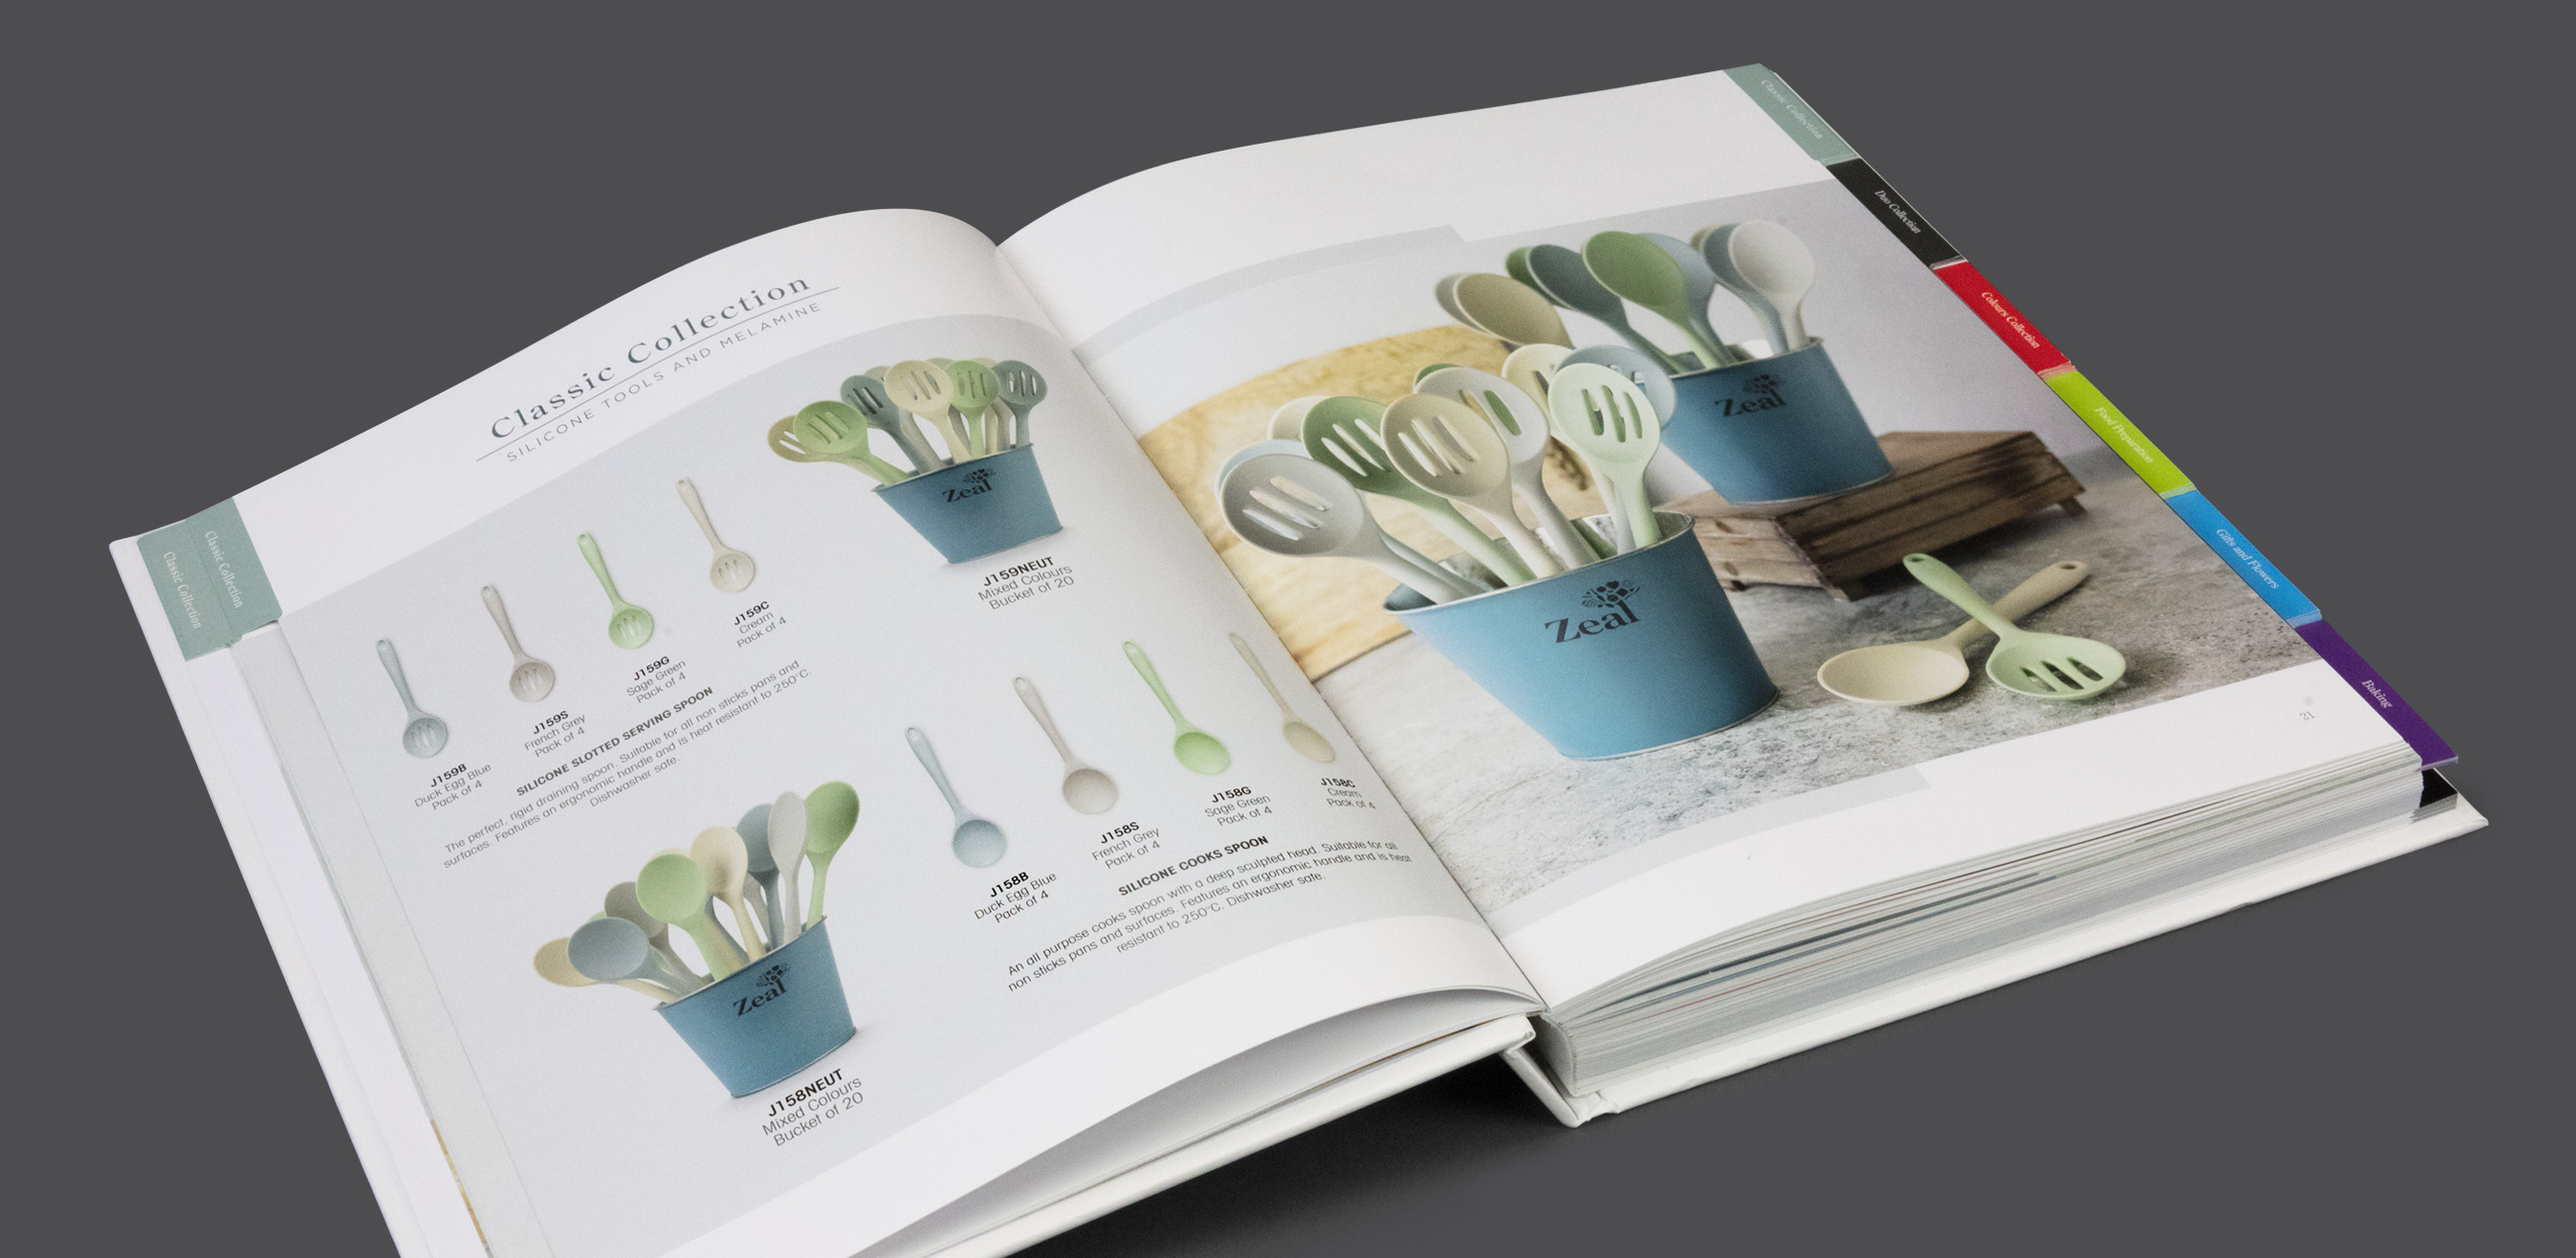 Printed product brochure designed for Zeal CKS Kitchenware